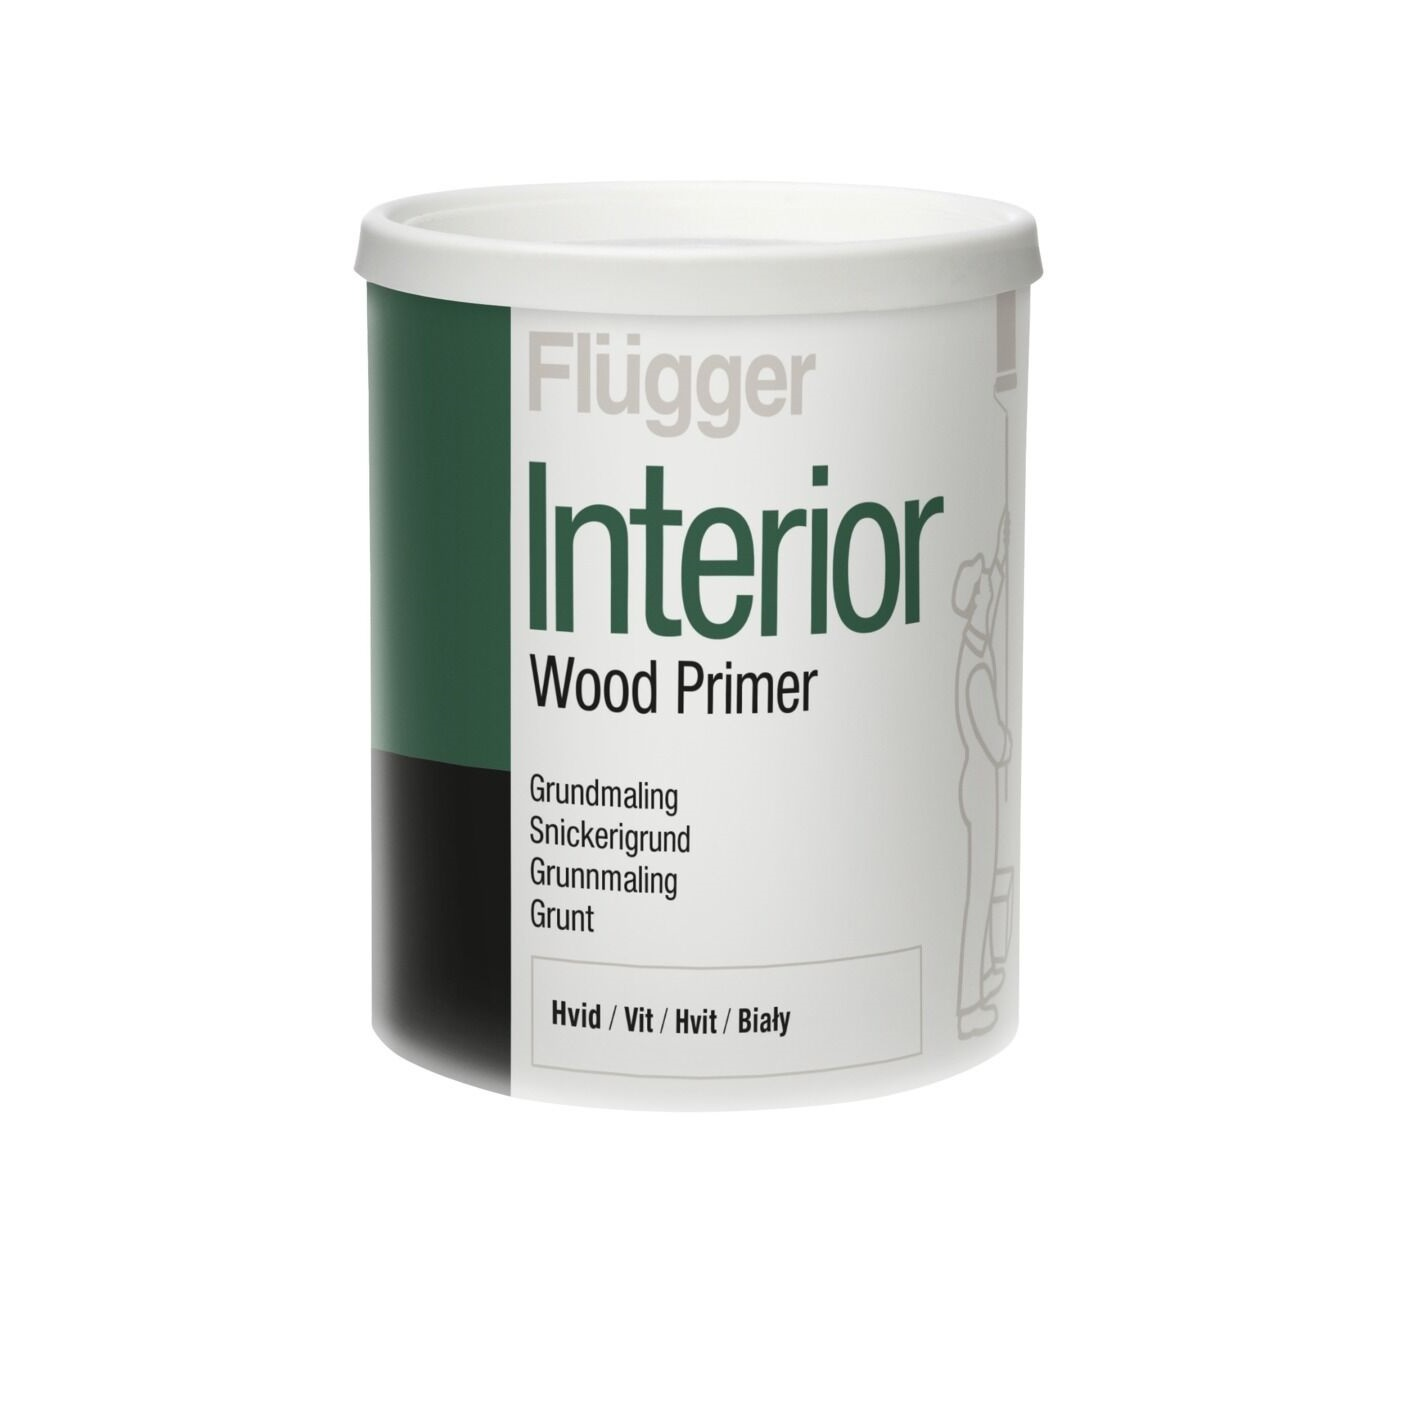 Flügger Interior Wood Primer